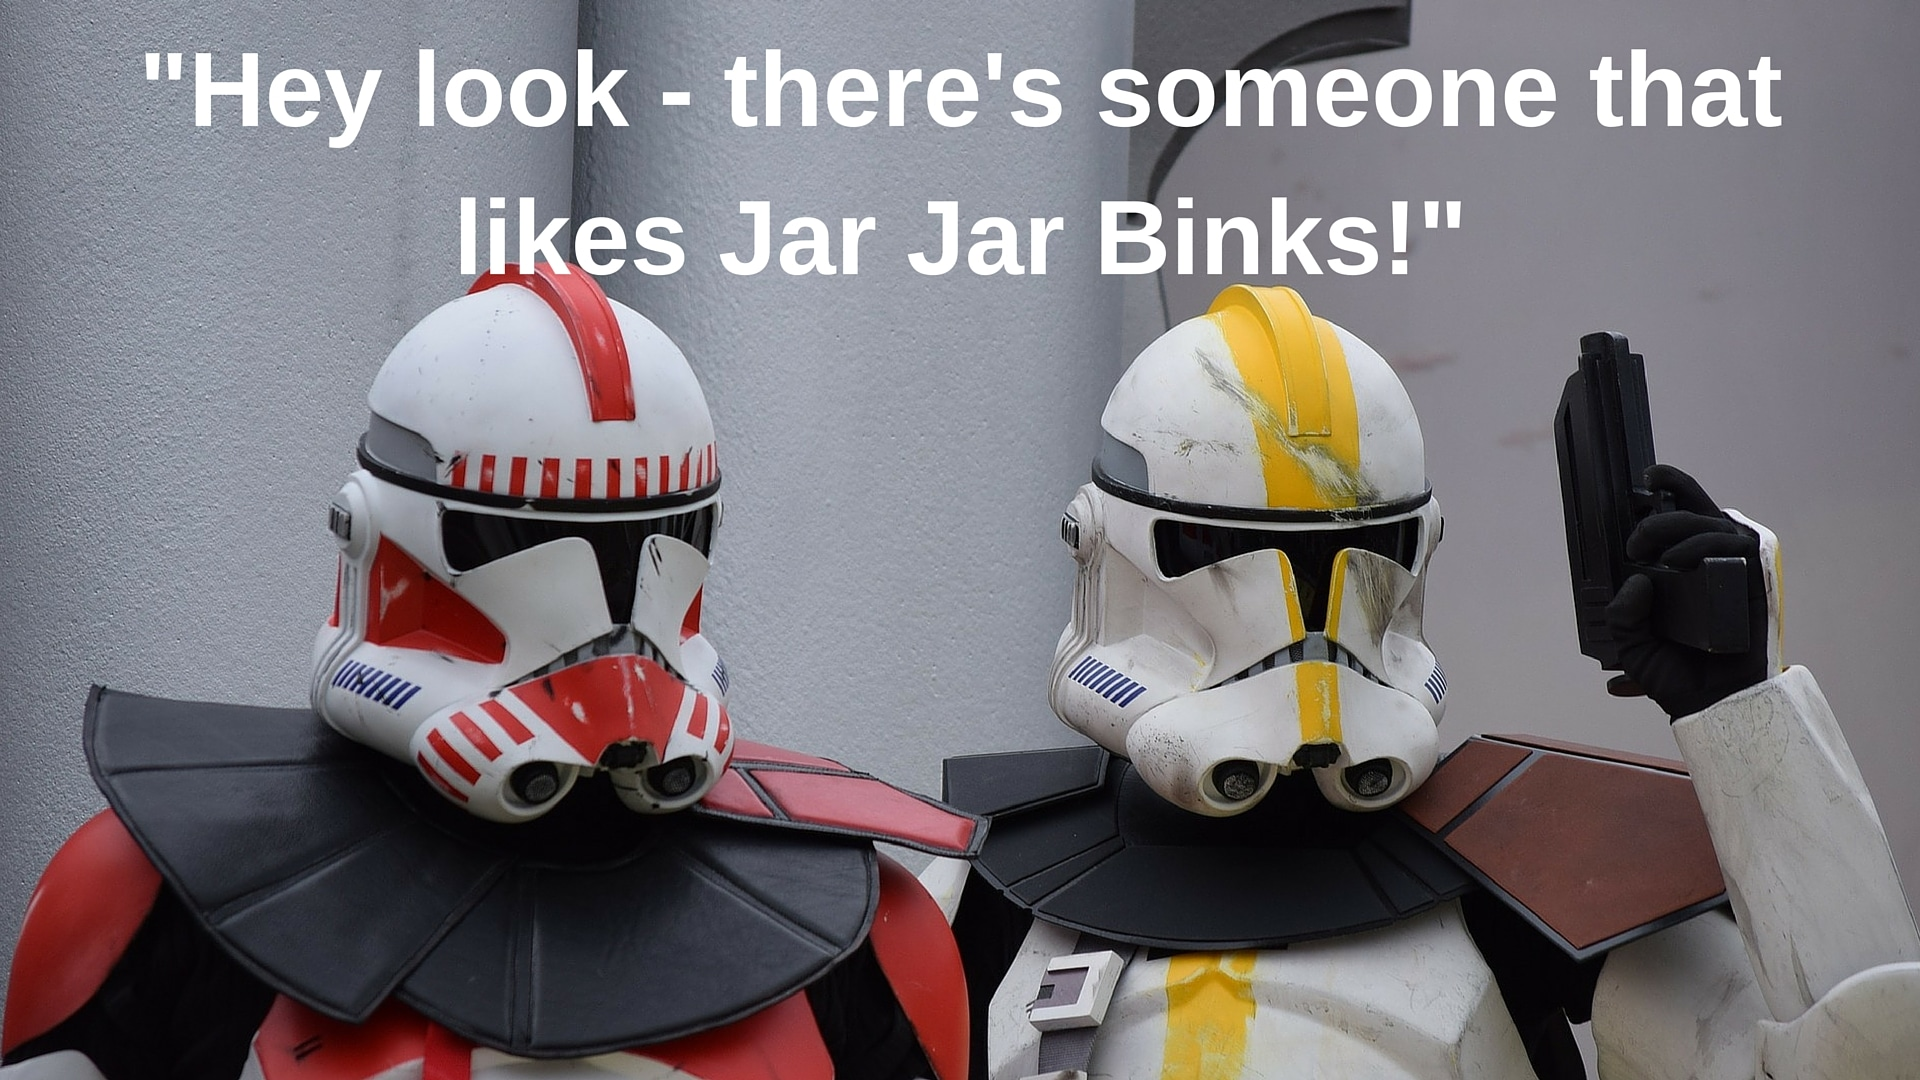 Hey look - there's someone that likes Jar Jar Binks!